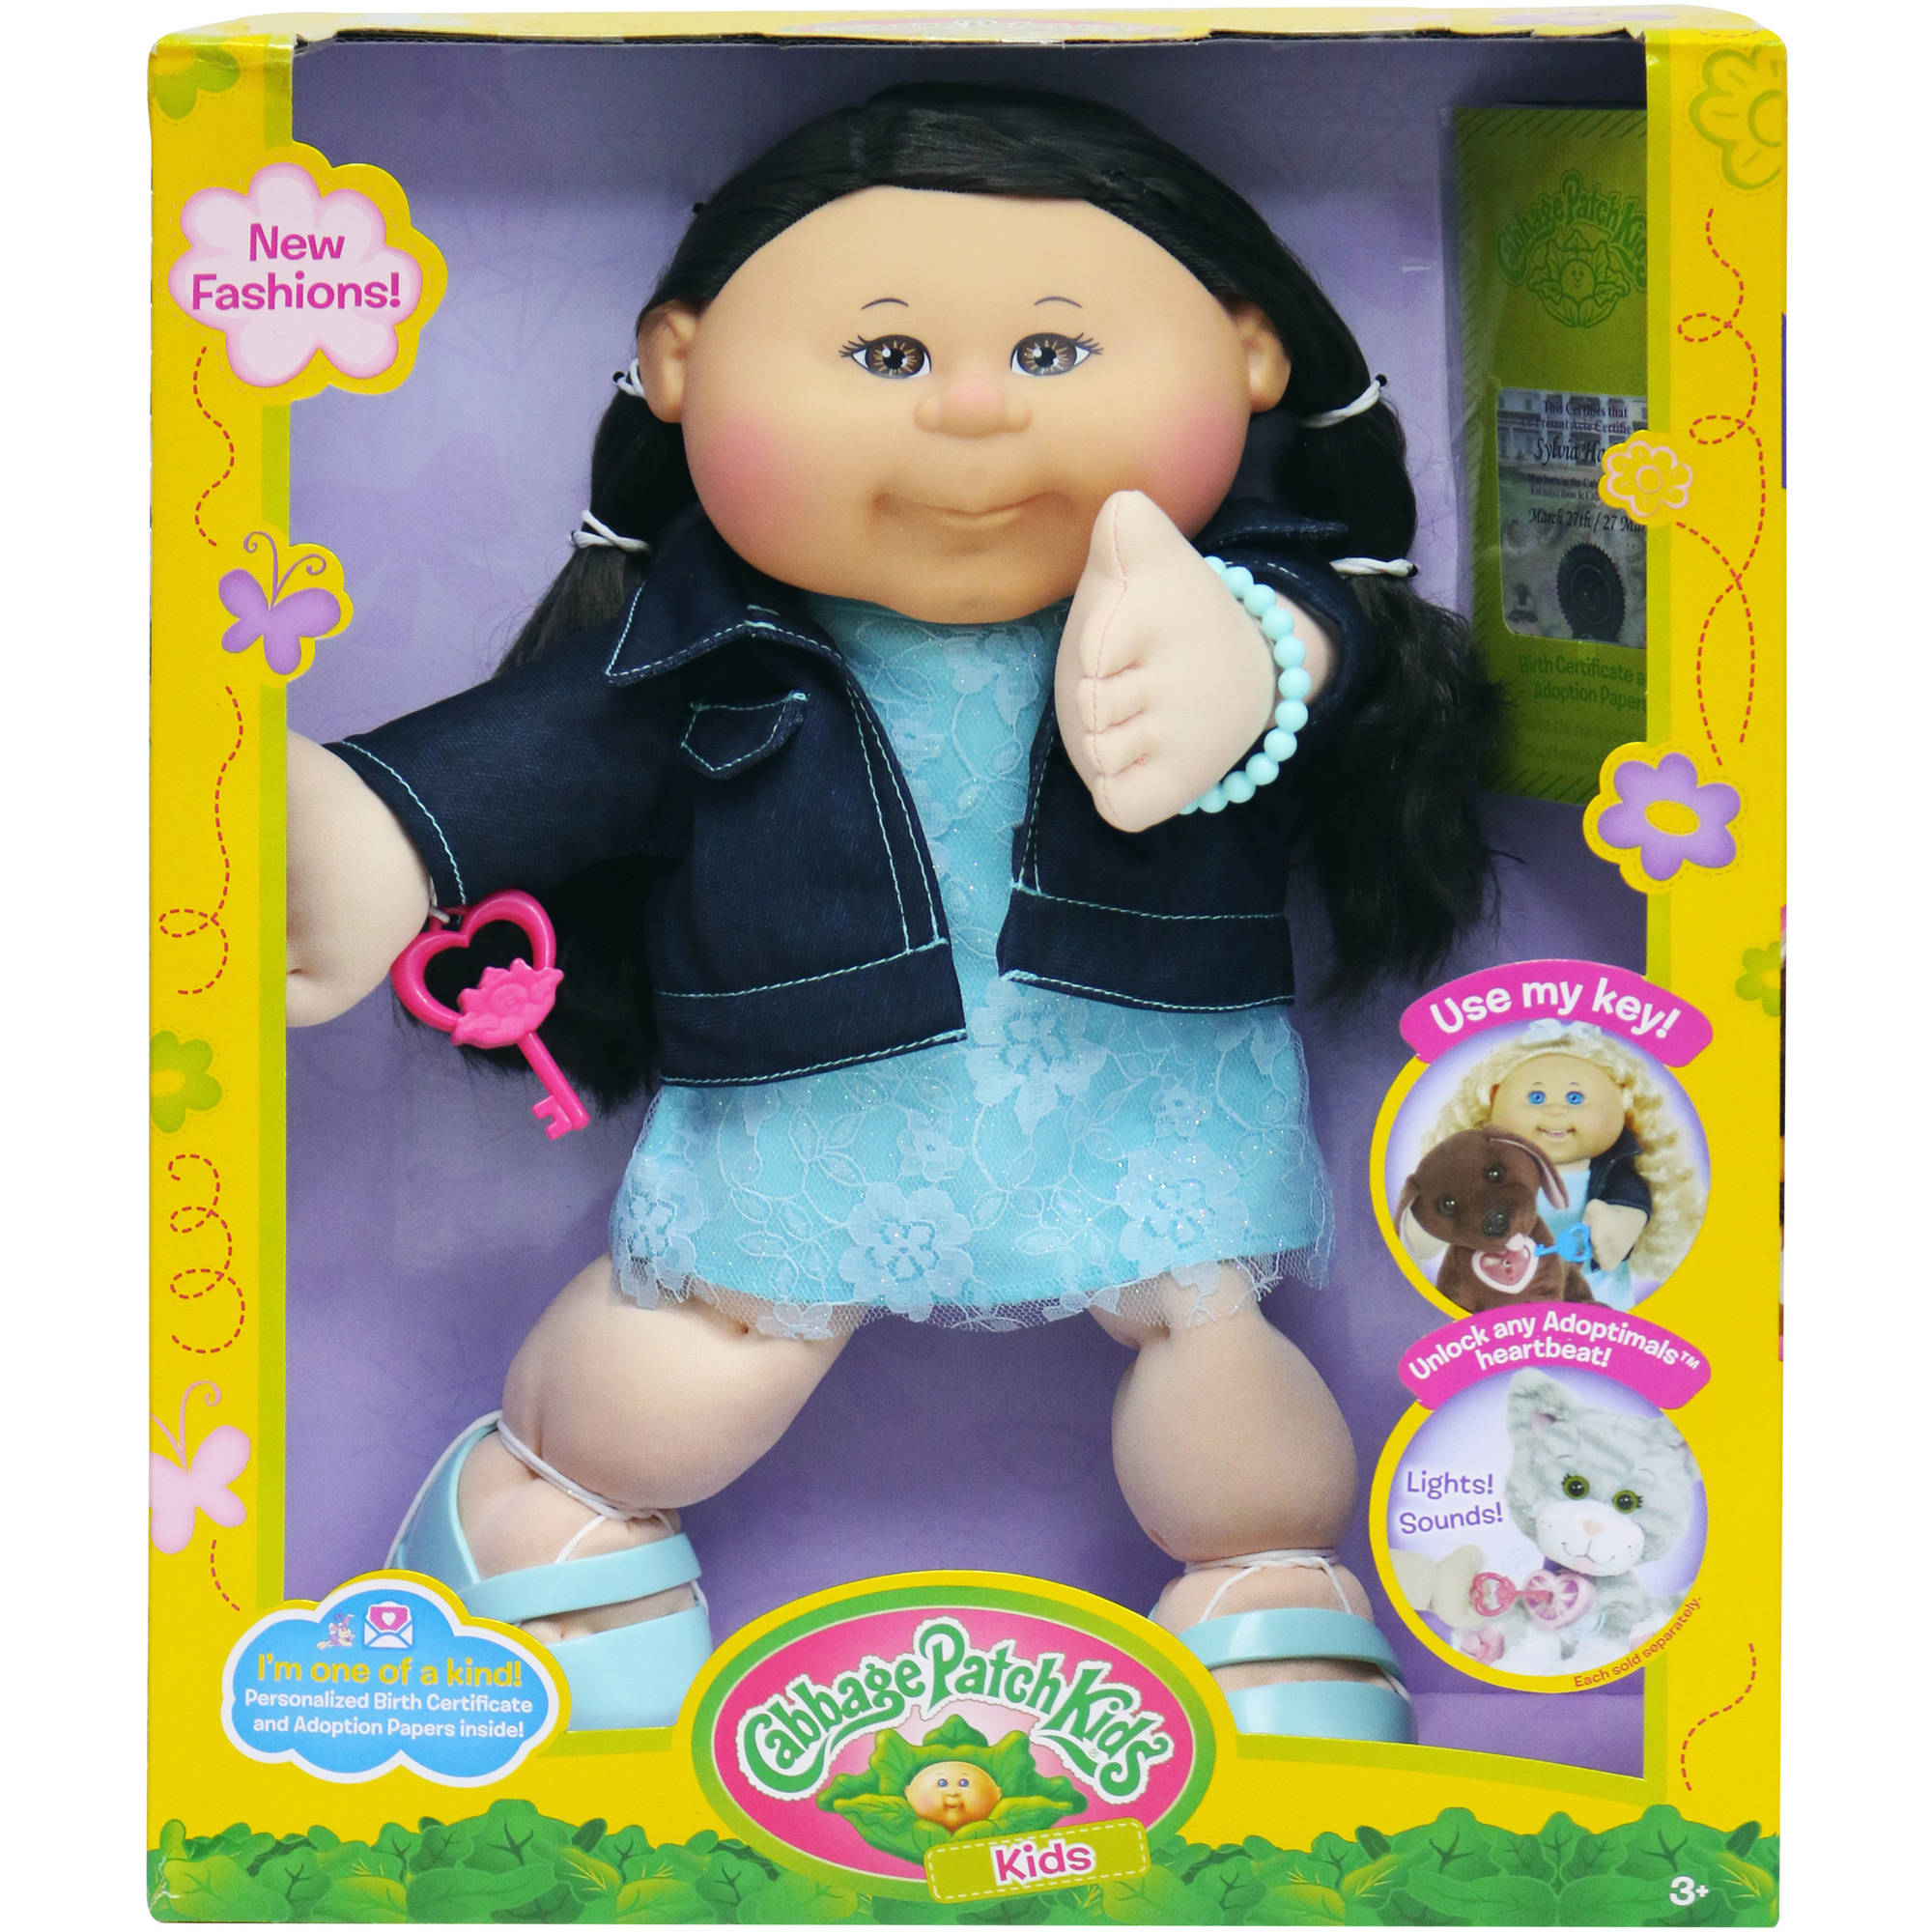 Cabbage Patch Kids Trendy Doll, Dark Hair/Brown Eye Girl